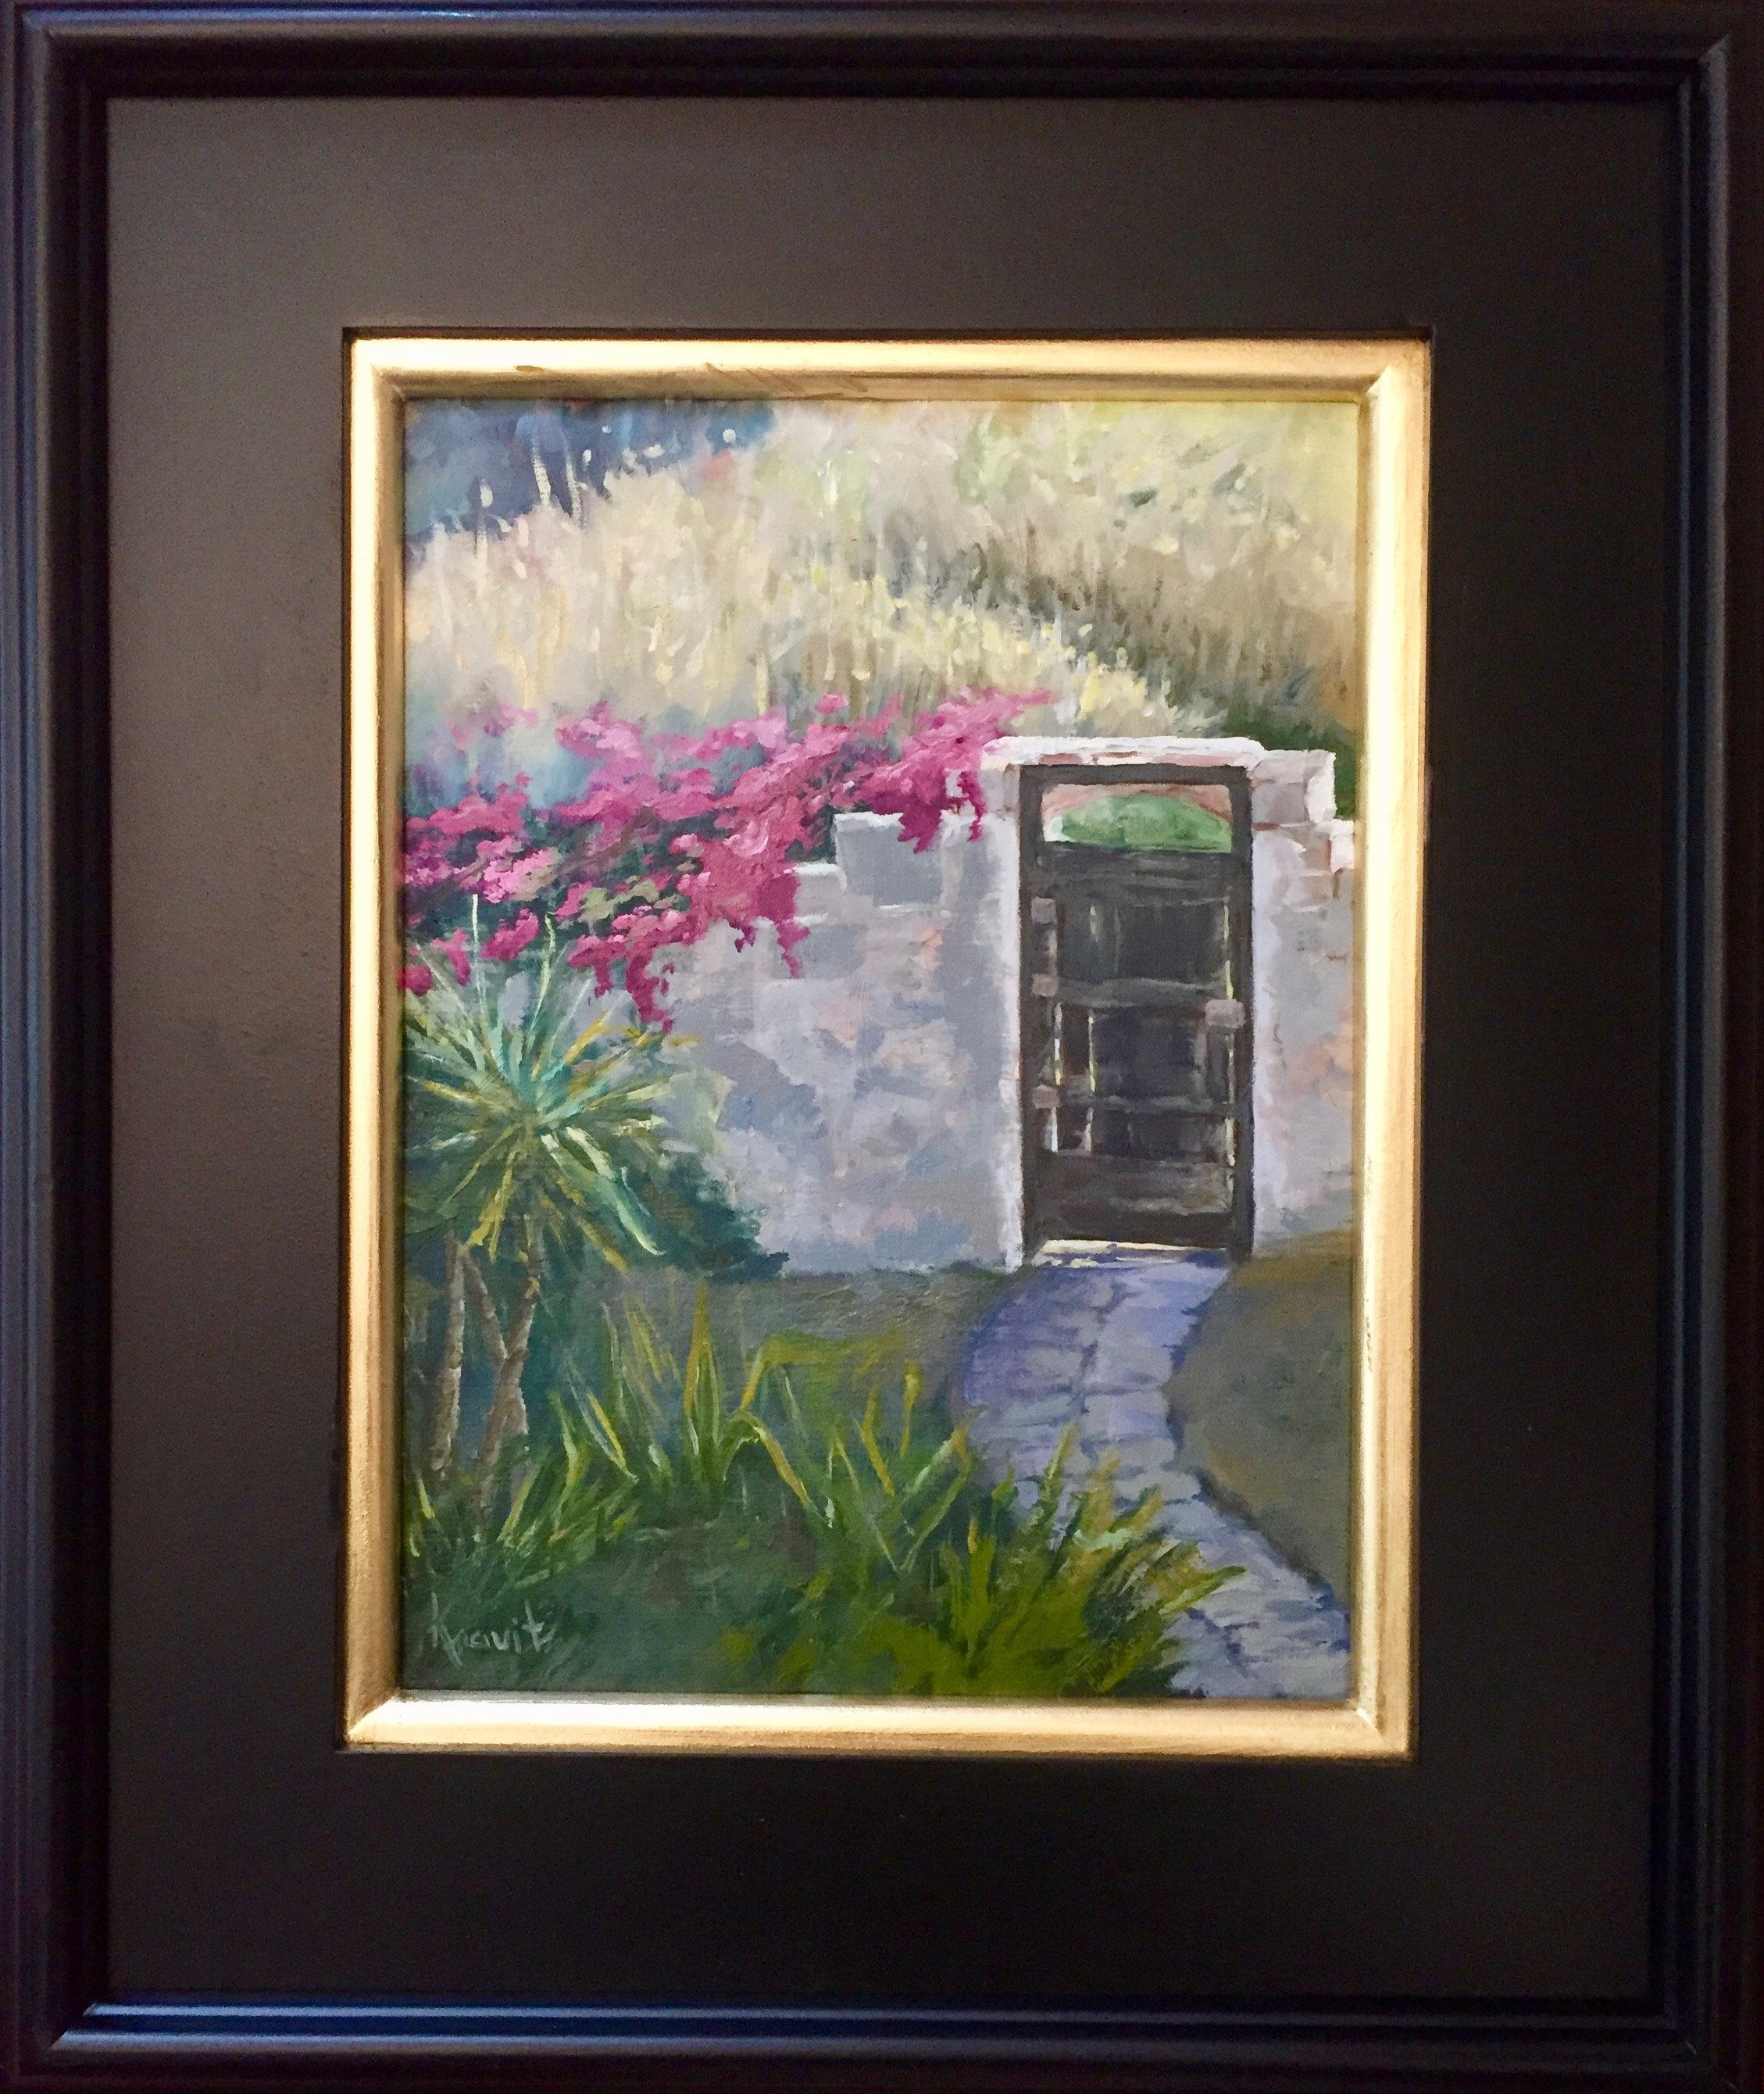 Italian Original Landscape Art Oil Painting Italy Old Wall And Door With Bougainvillea Art Small Wall Art 9 X12 Sicily Plein Air Art With Images Small Wall Art Painting Landscape Art